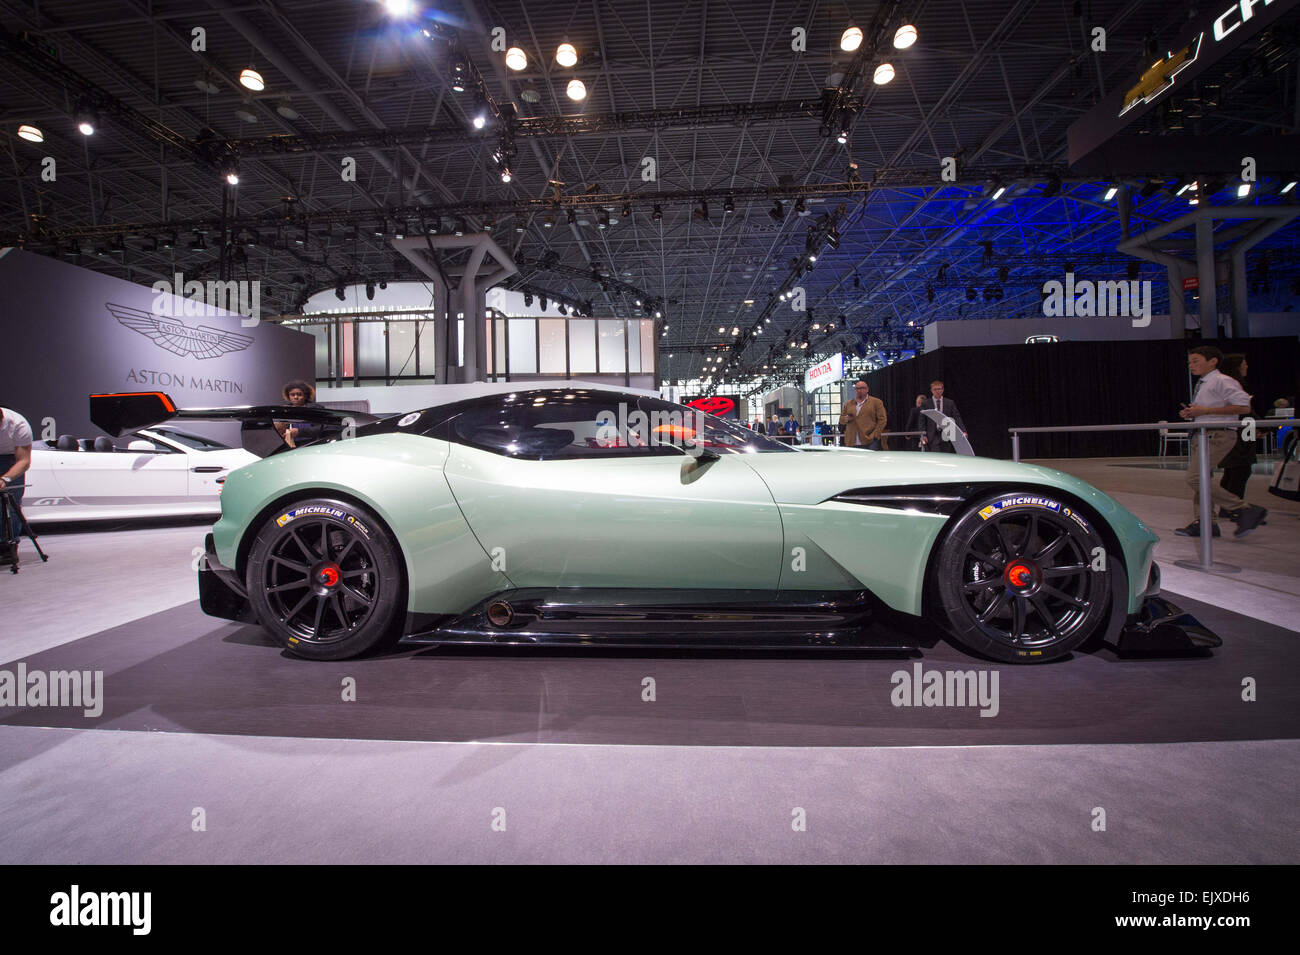 Manhattan, New York, USA. 1st Apr, 2015. Aston Martin Vulcan, limited to a production run of 24, in honor of the - Stock Image